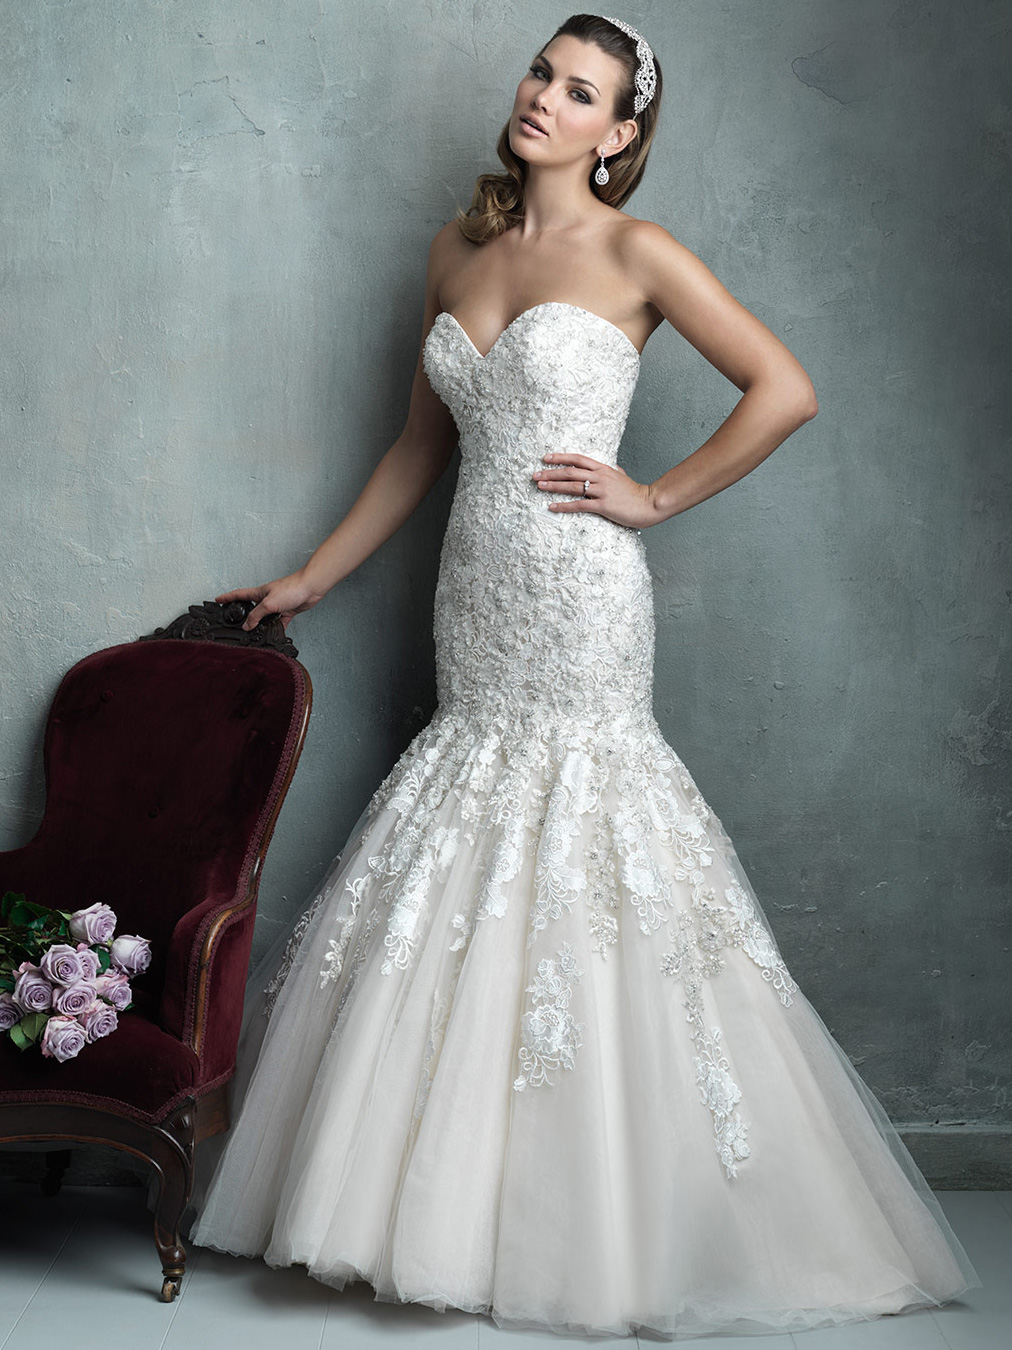 Allure Couture Sweetheart Mermaid Wedding Dress C331|DimitraDesigns.com